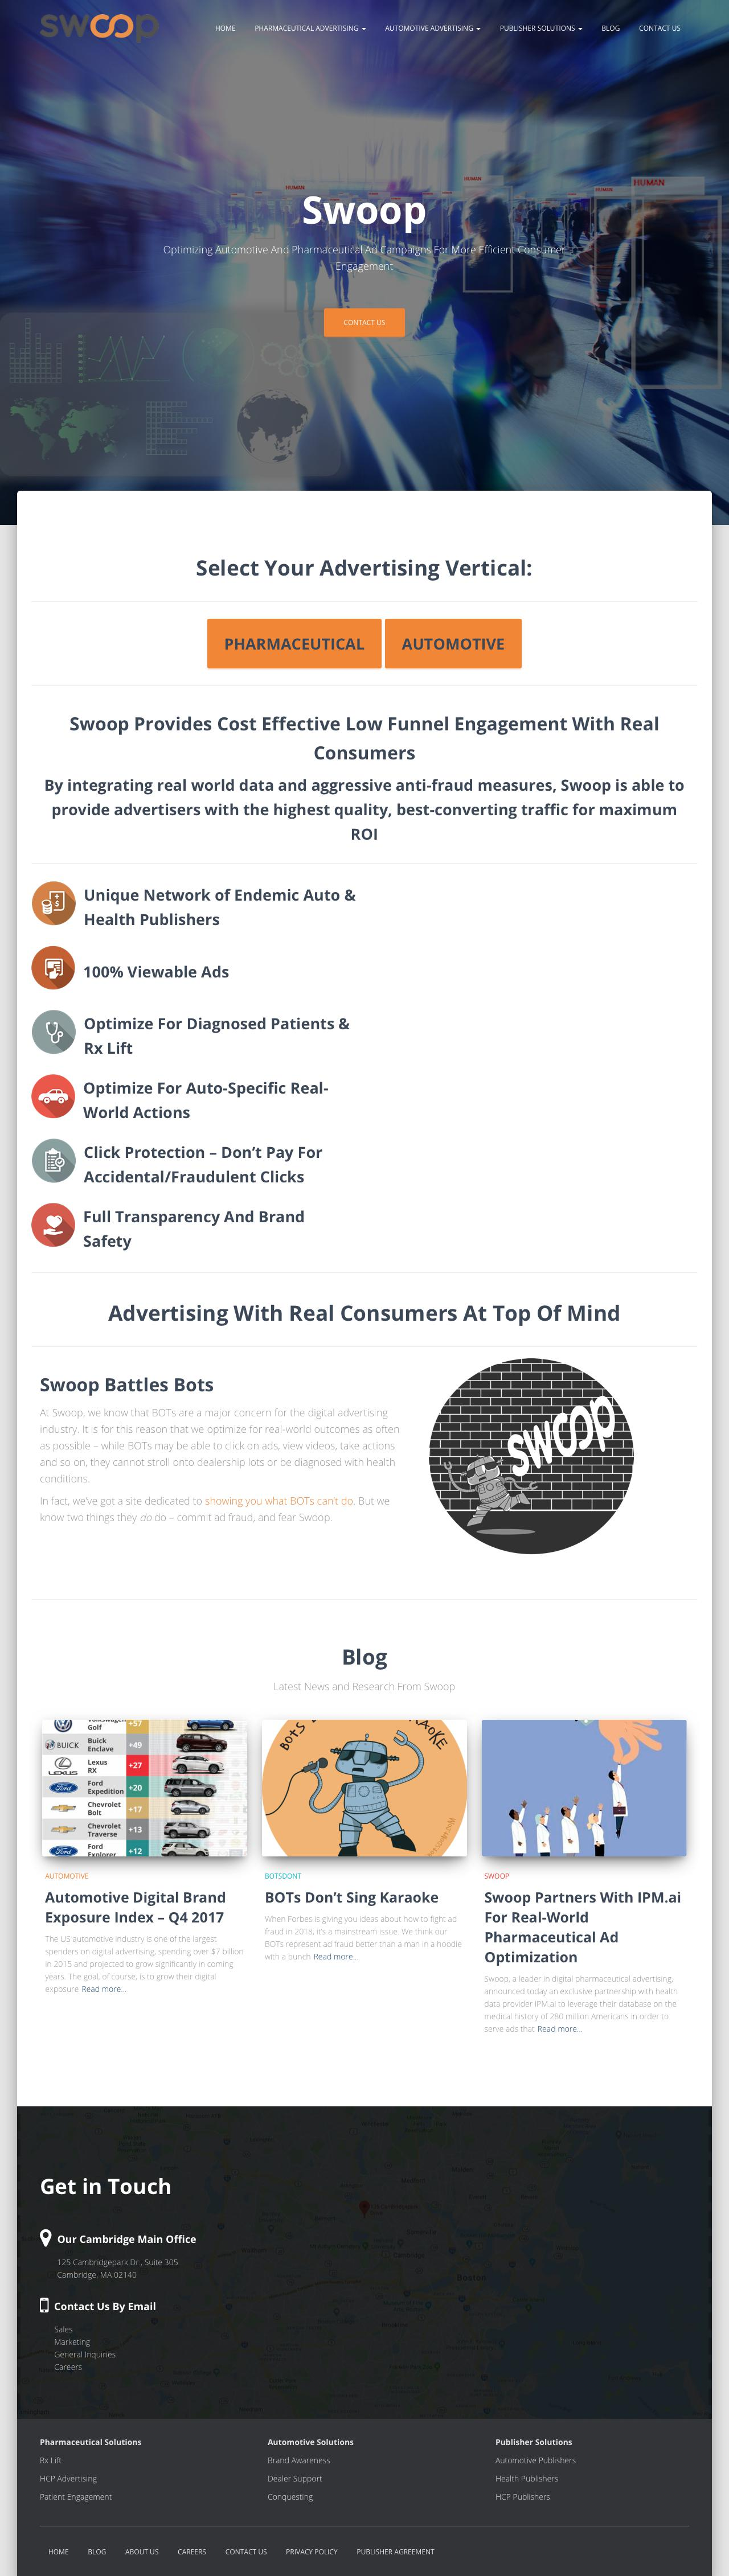 Screenshot of swoop.com - Swoop – Real-World Success For Automotive and Pharmaceutical Advertisers - captured March 17, 2018